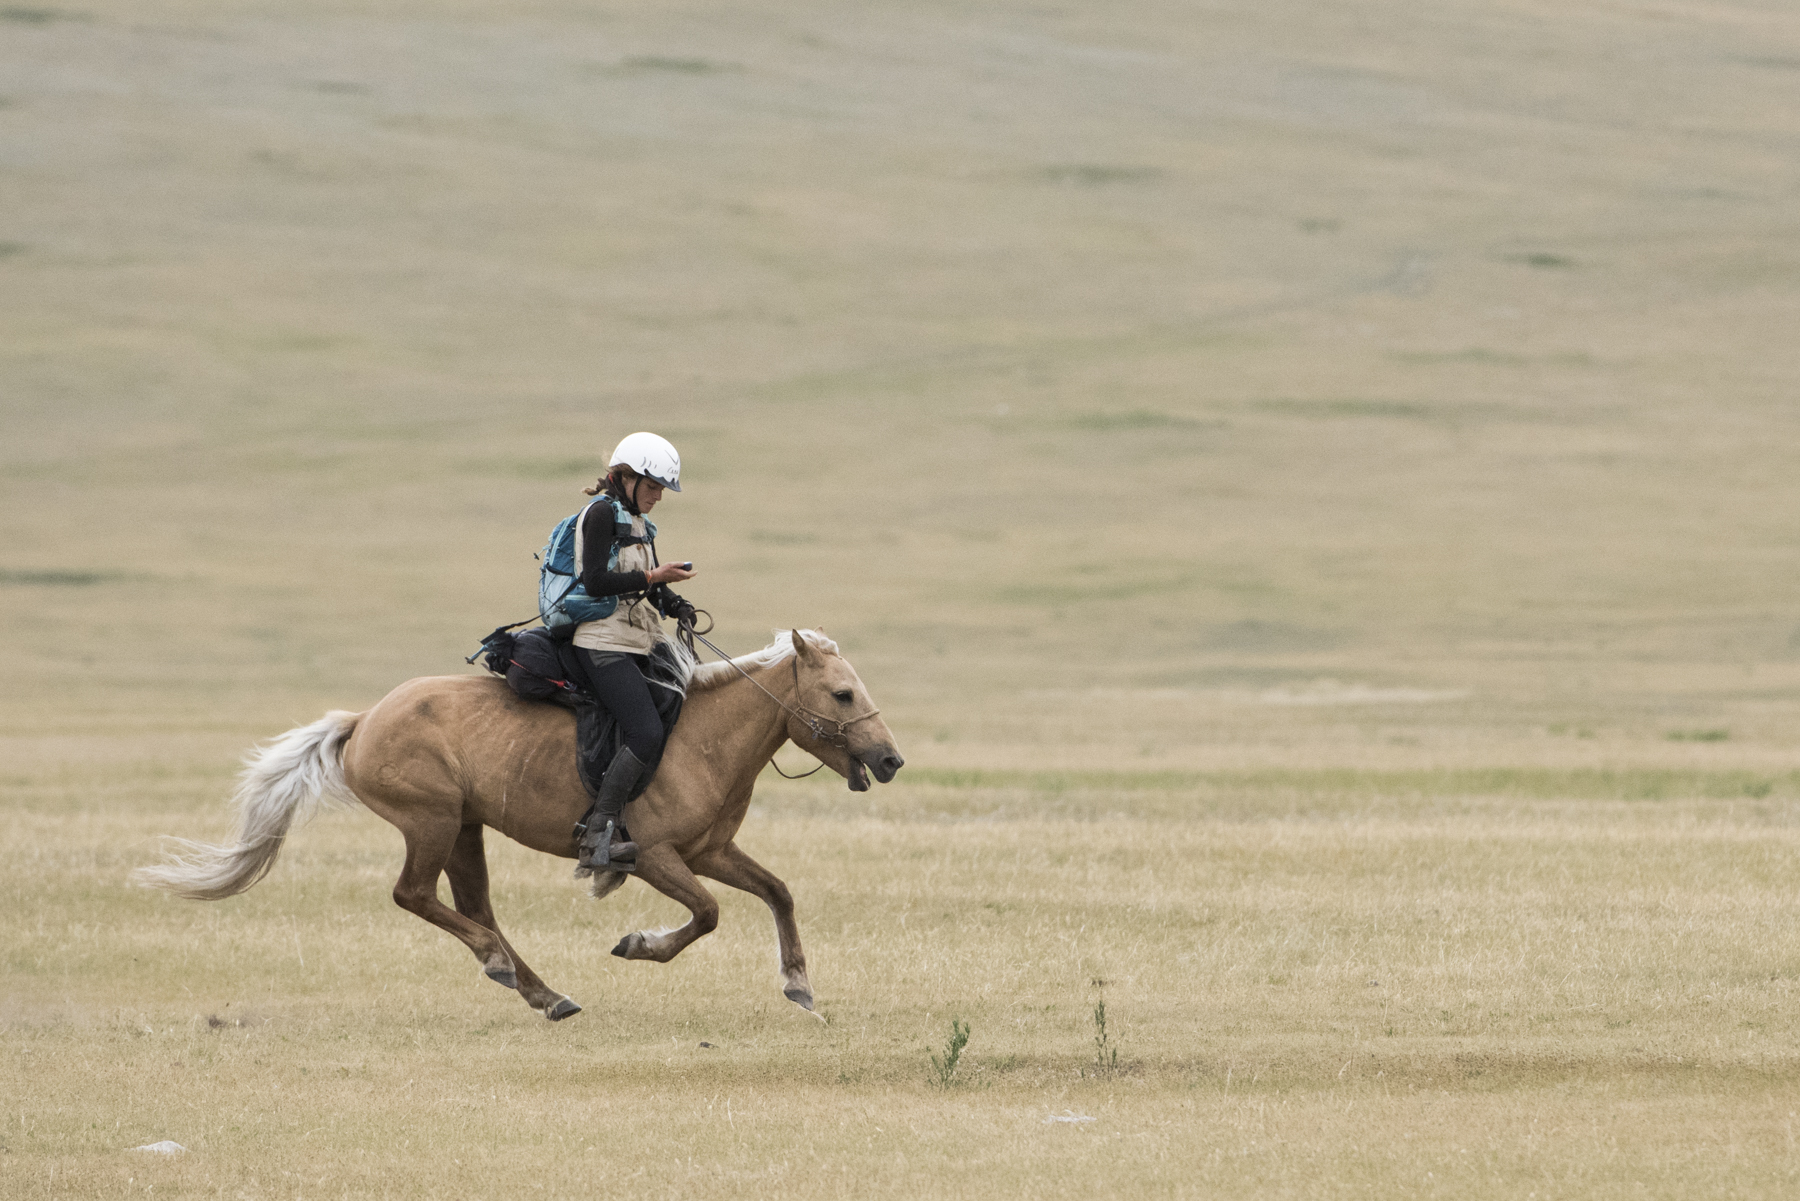 2015-08-11-Day 7 Mongol-Derby-Urtuu-23-28- 18 year old Elise from France heading for the finishing line to become 2nd place at the 2015 Mongol Derby